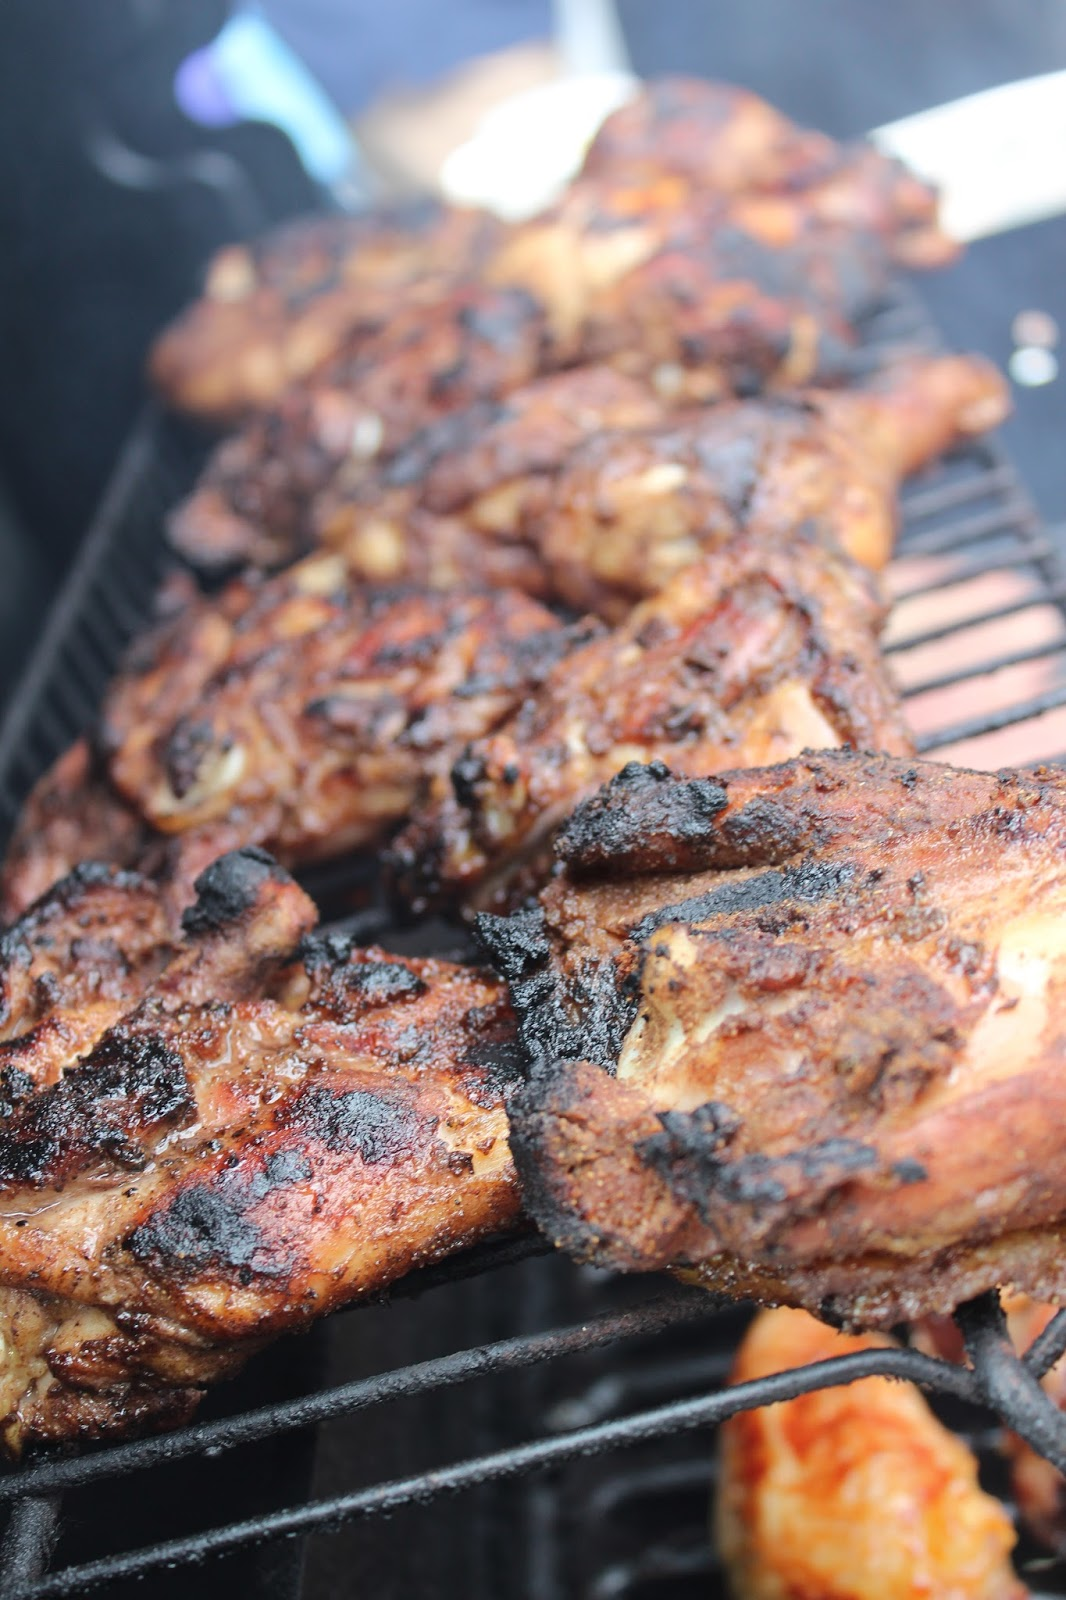 Baked or Grilled Jerk Chicken